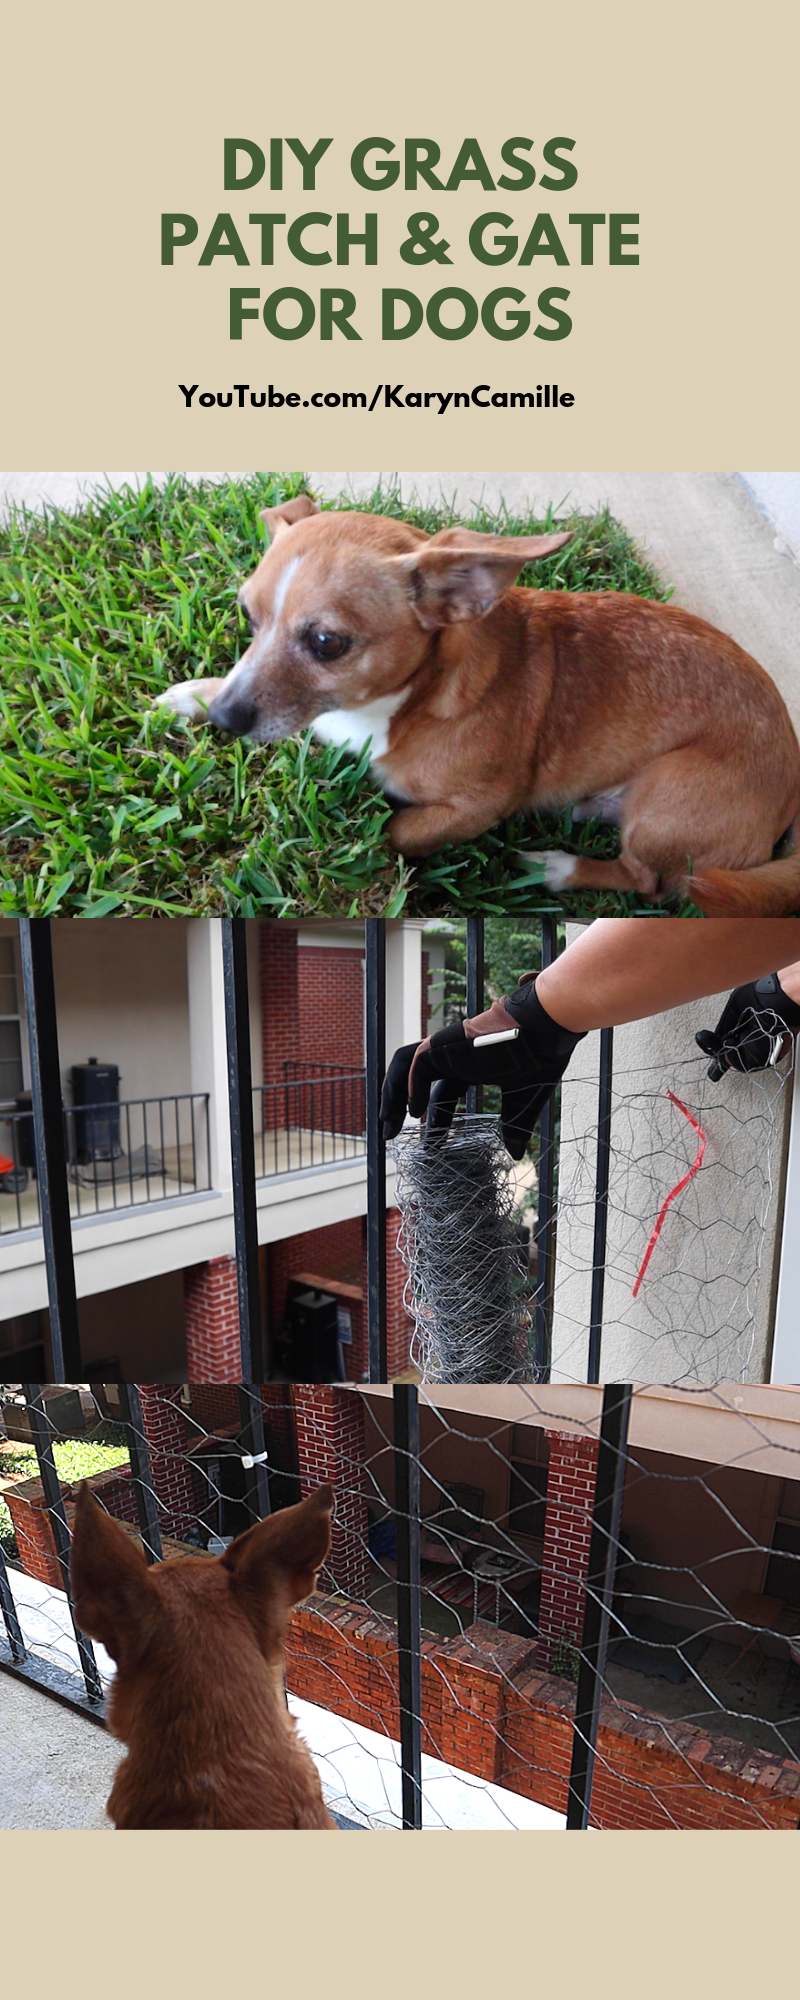 Mini Balcony Yard For Pets Ideal For Apartments And Houses Small Dog Fence Balcony For Dogs Dog Fence